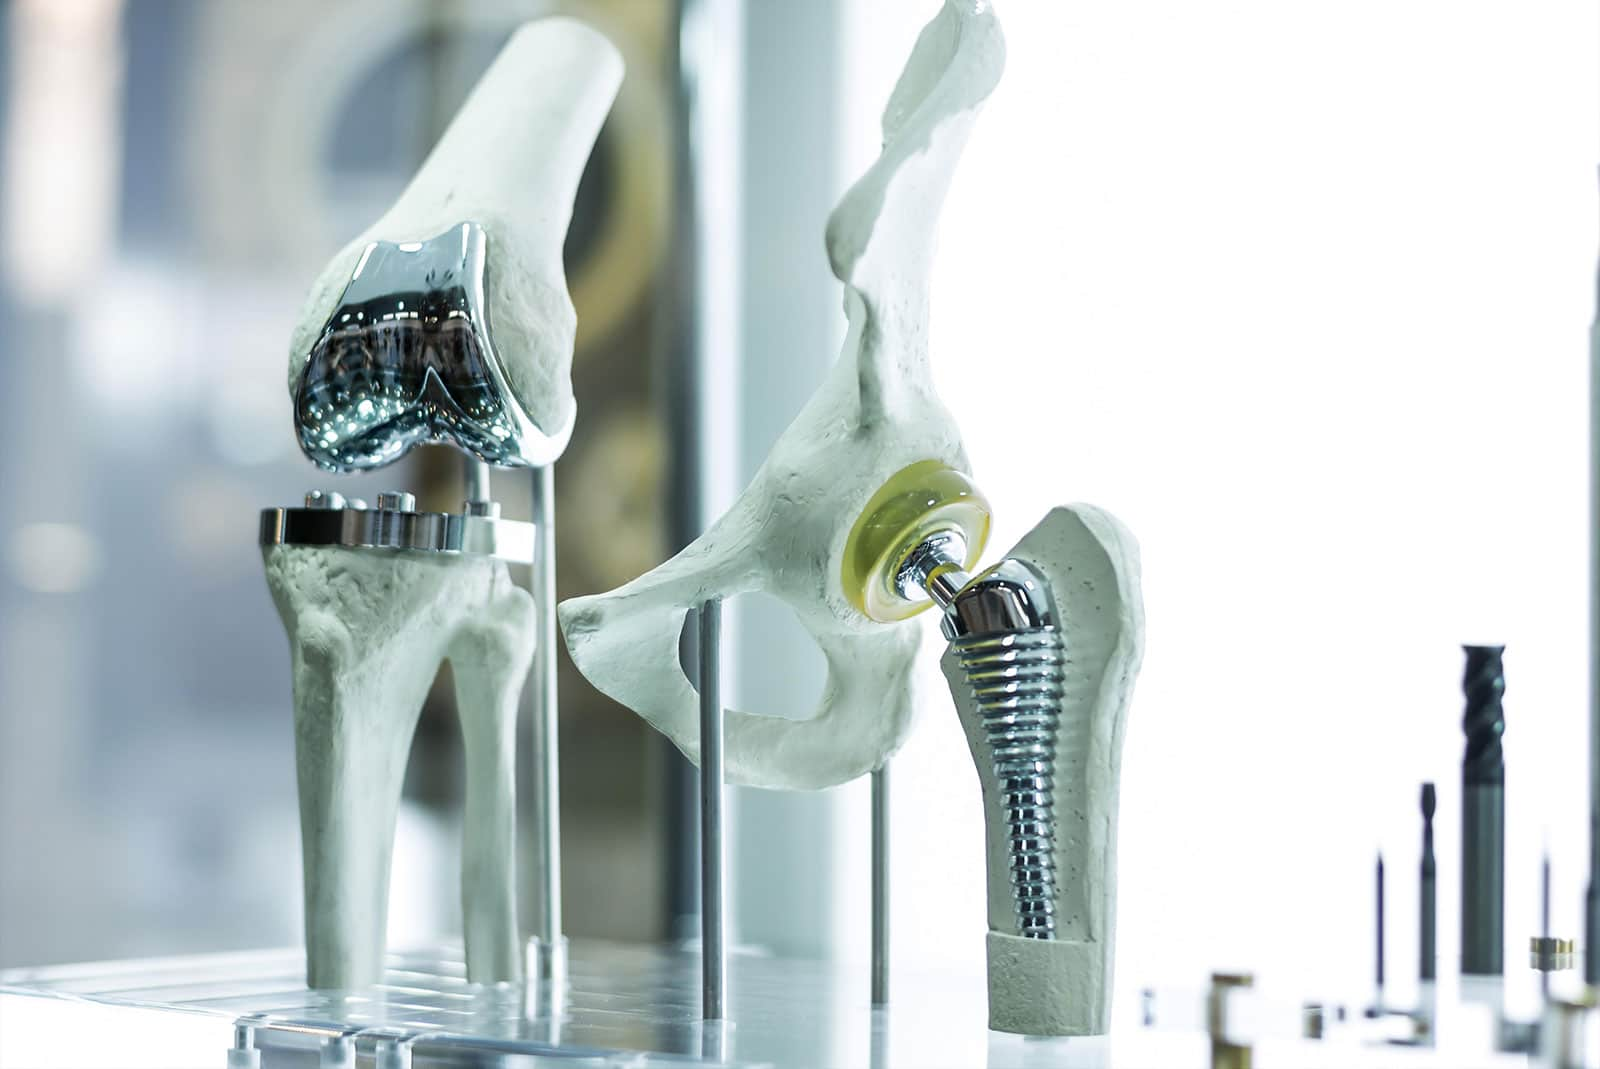 3D printed prosthetic reconstructions